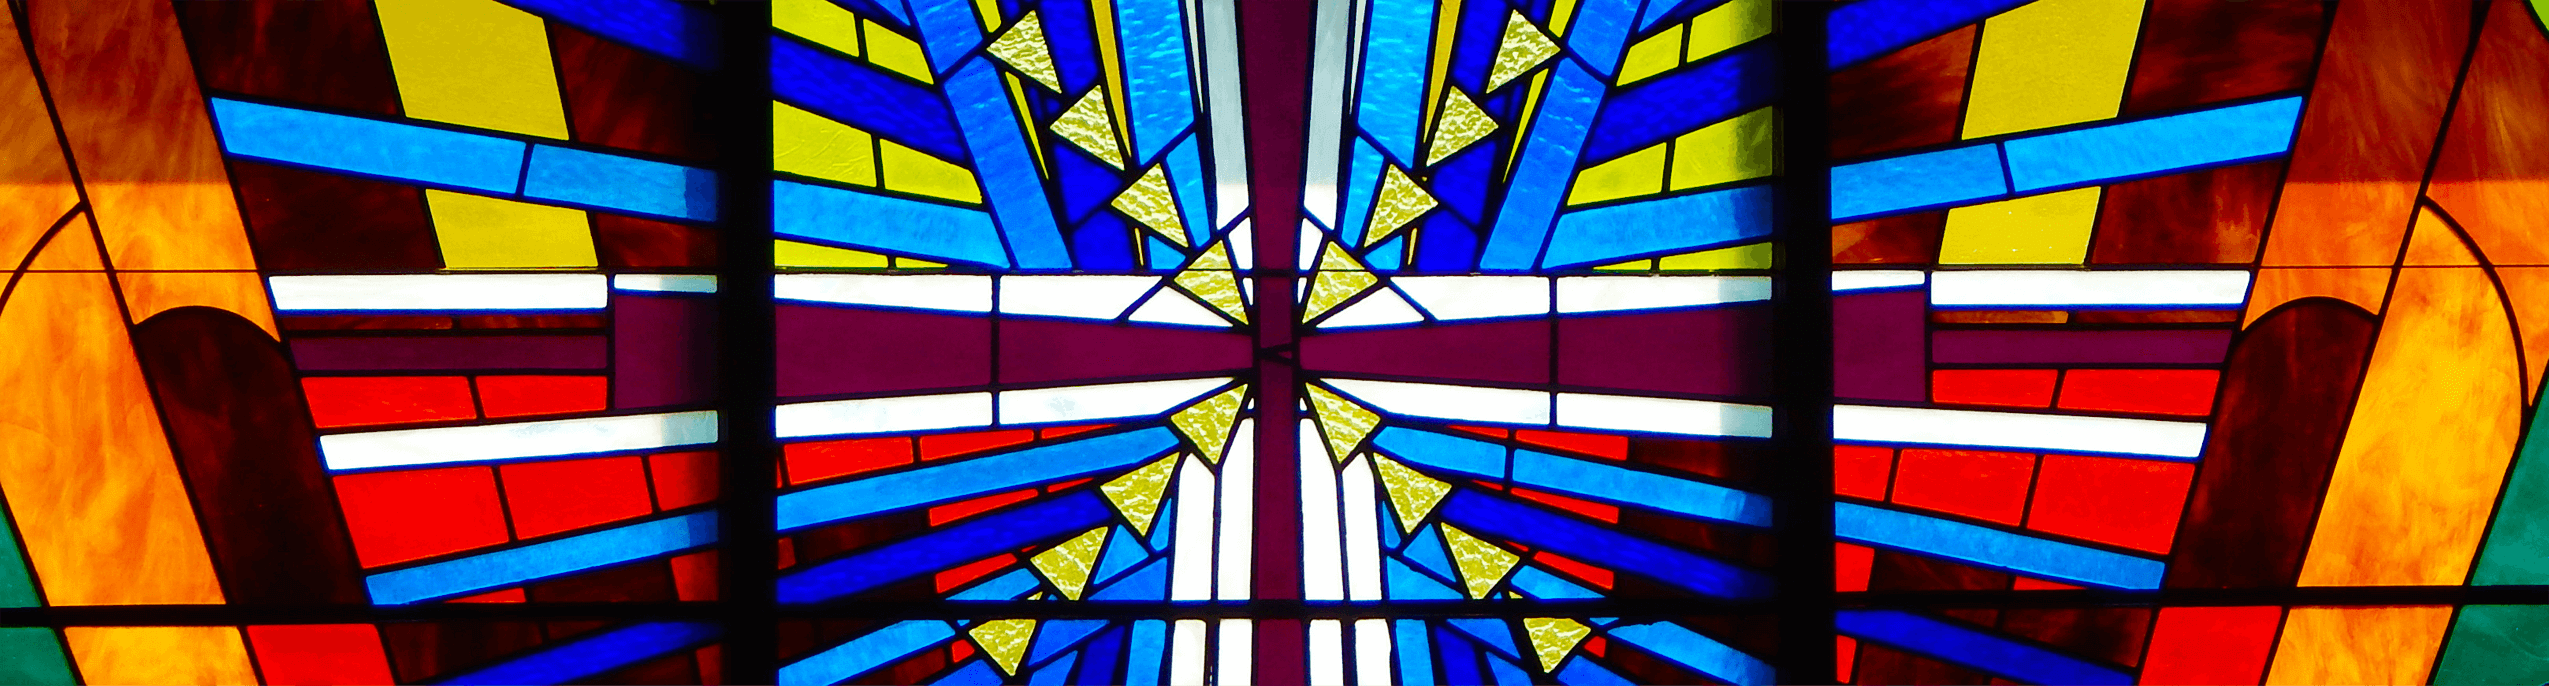 Stained glass window of Forest Oaks Lutheran Church